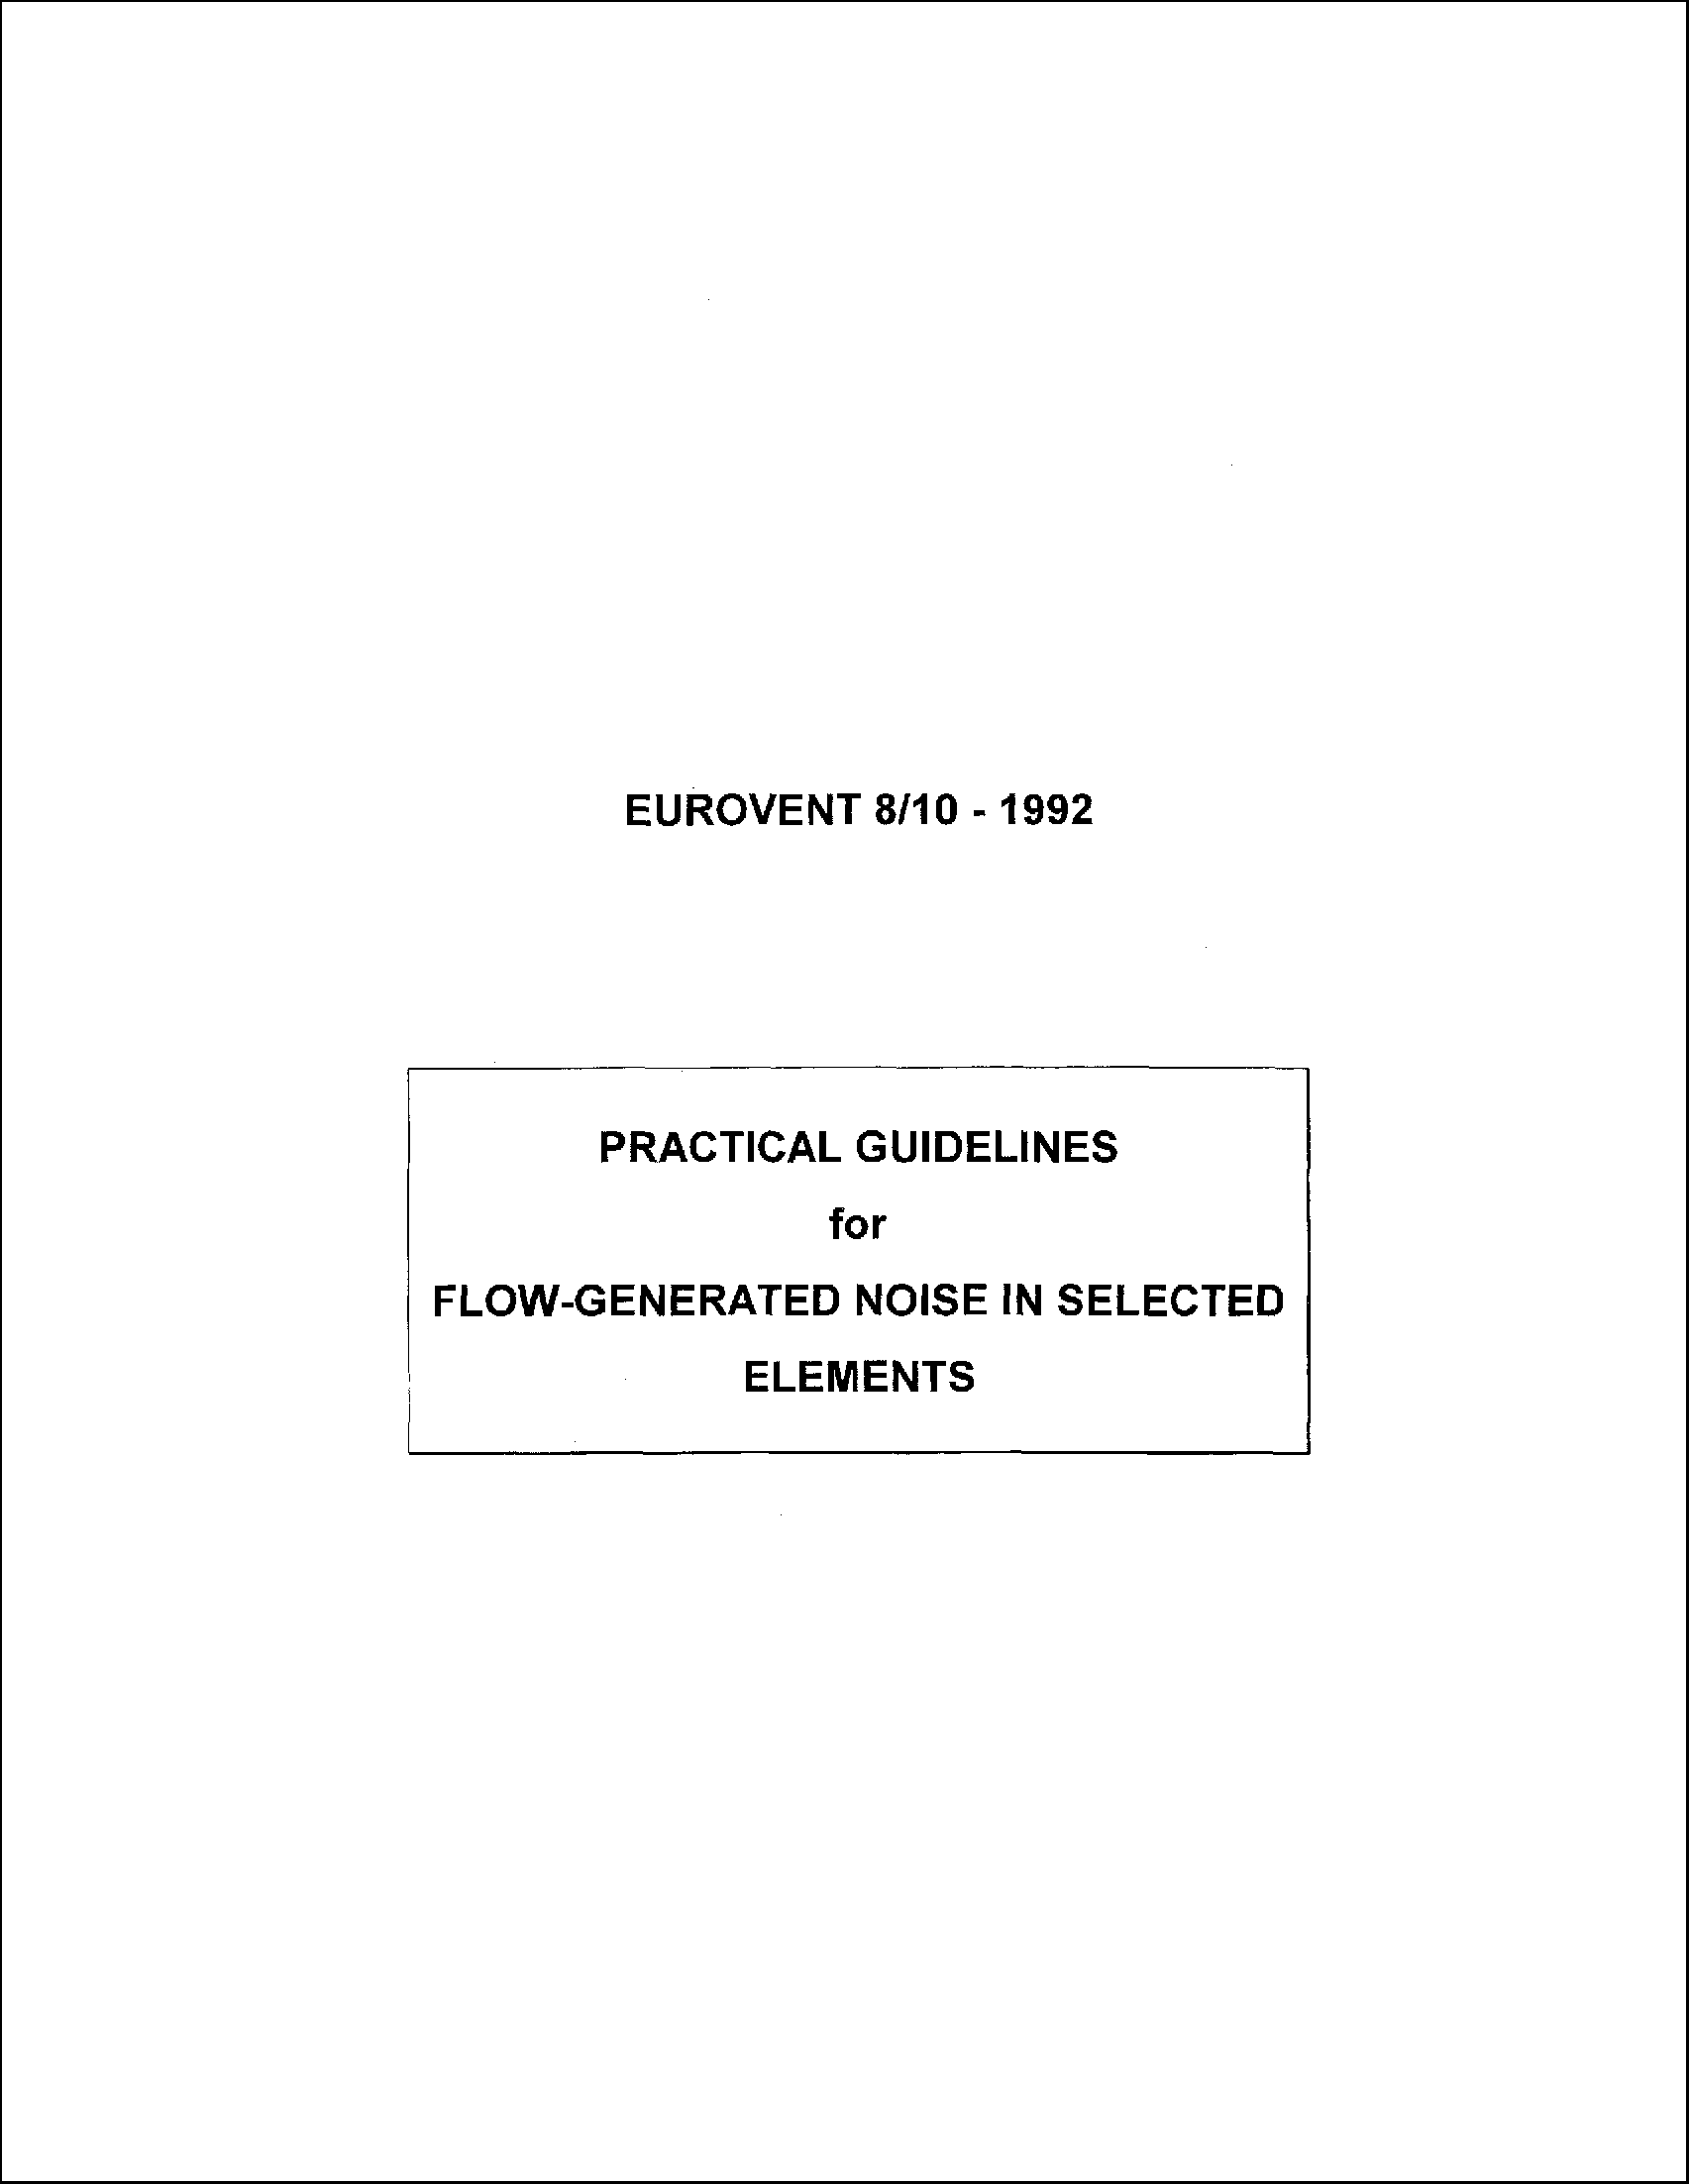 1992 - Practical guidelines for flow-generated noise in selected elements